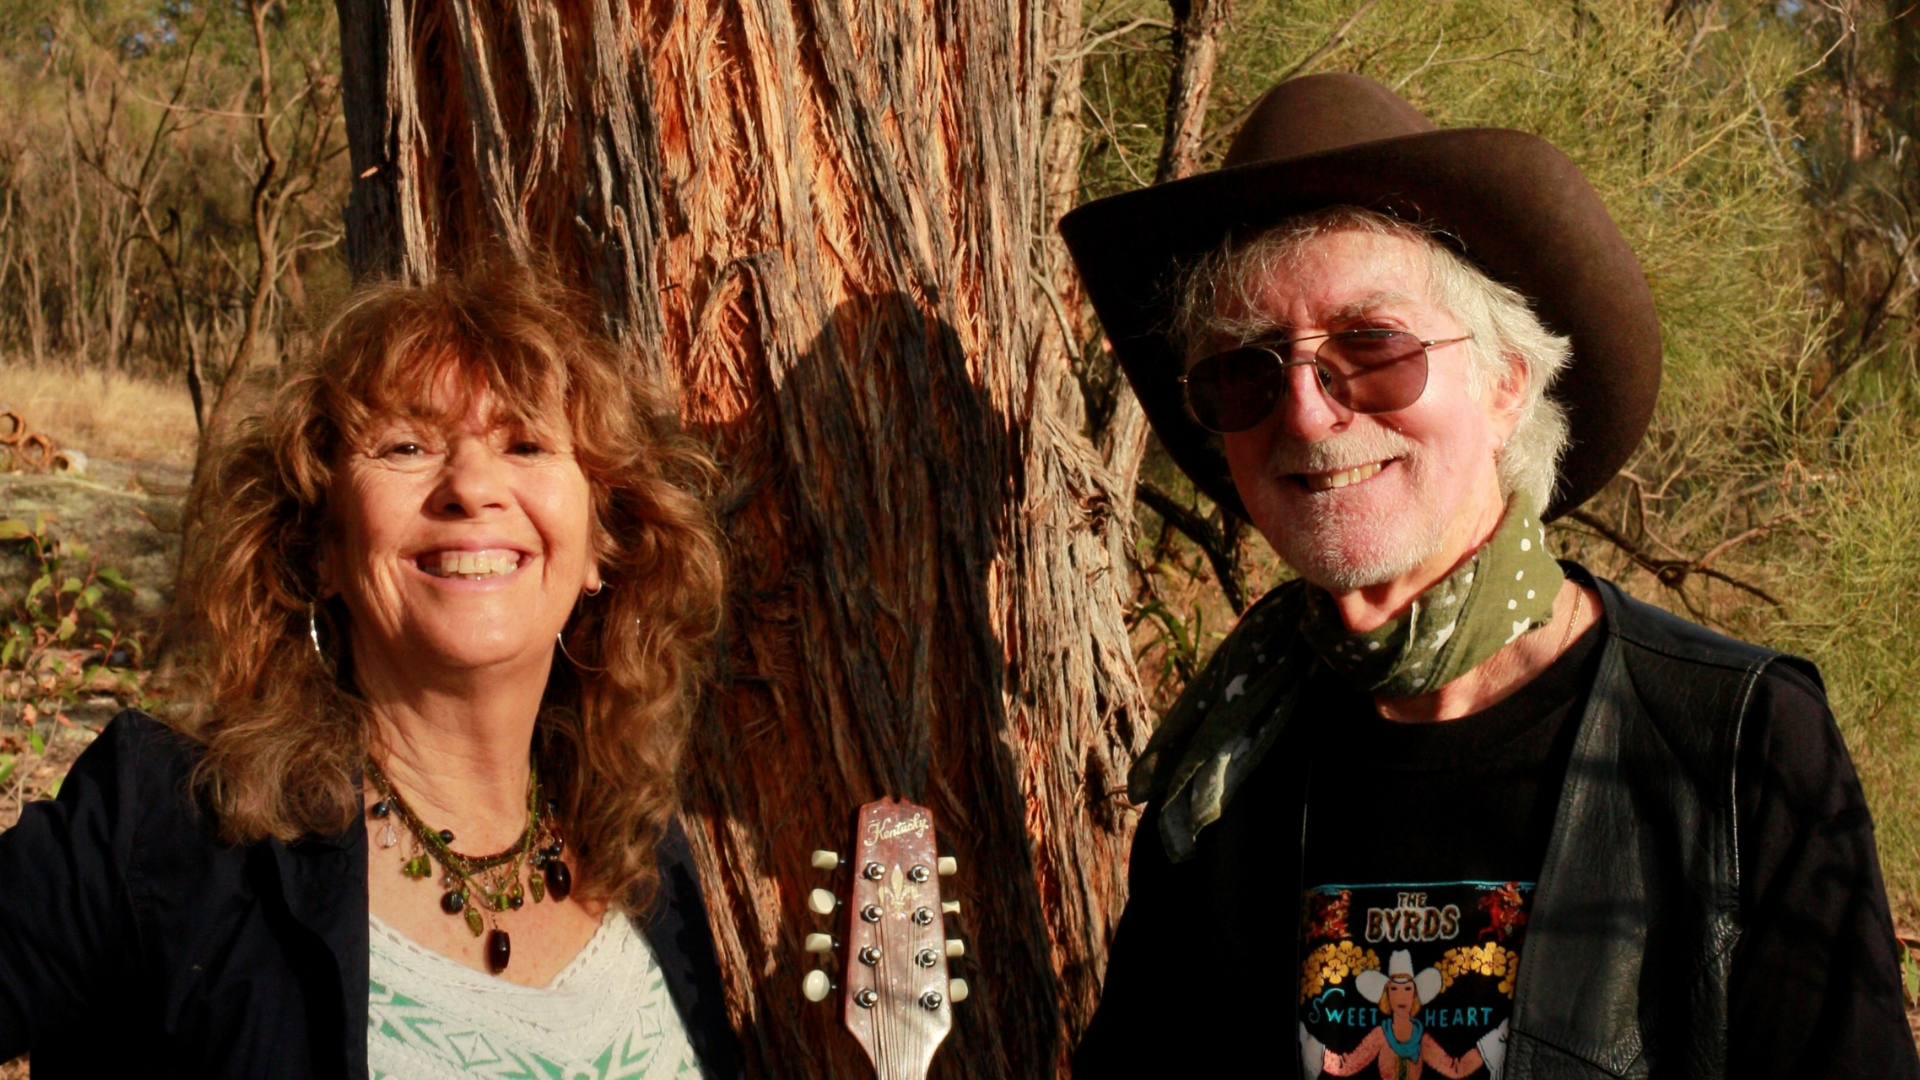 PENNY DAVIES & ROGER ILOTT (QLD)  After almost 40 years of writing playing recording and singing together Penny Davies & Roger Ilott create the kind of seamless musical persona as a duo that only a long and loving musical relationship can. Their evocative versions of Queensland poet Bill Scott's songs are classics of the genre.